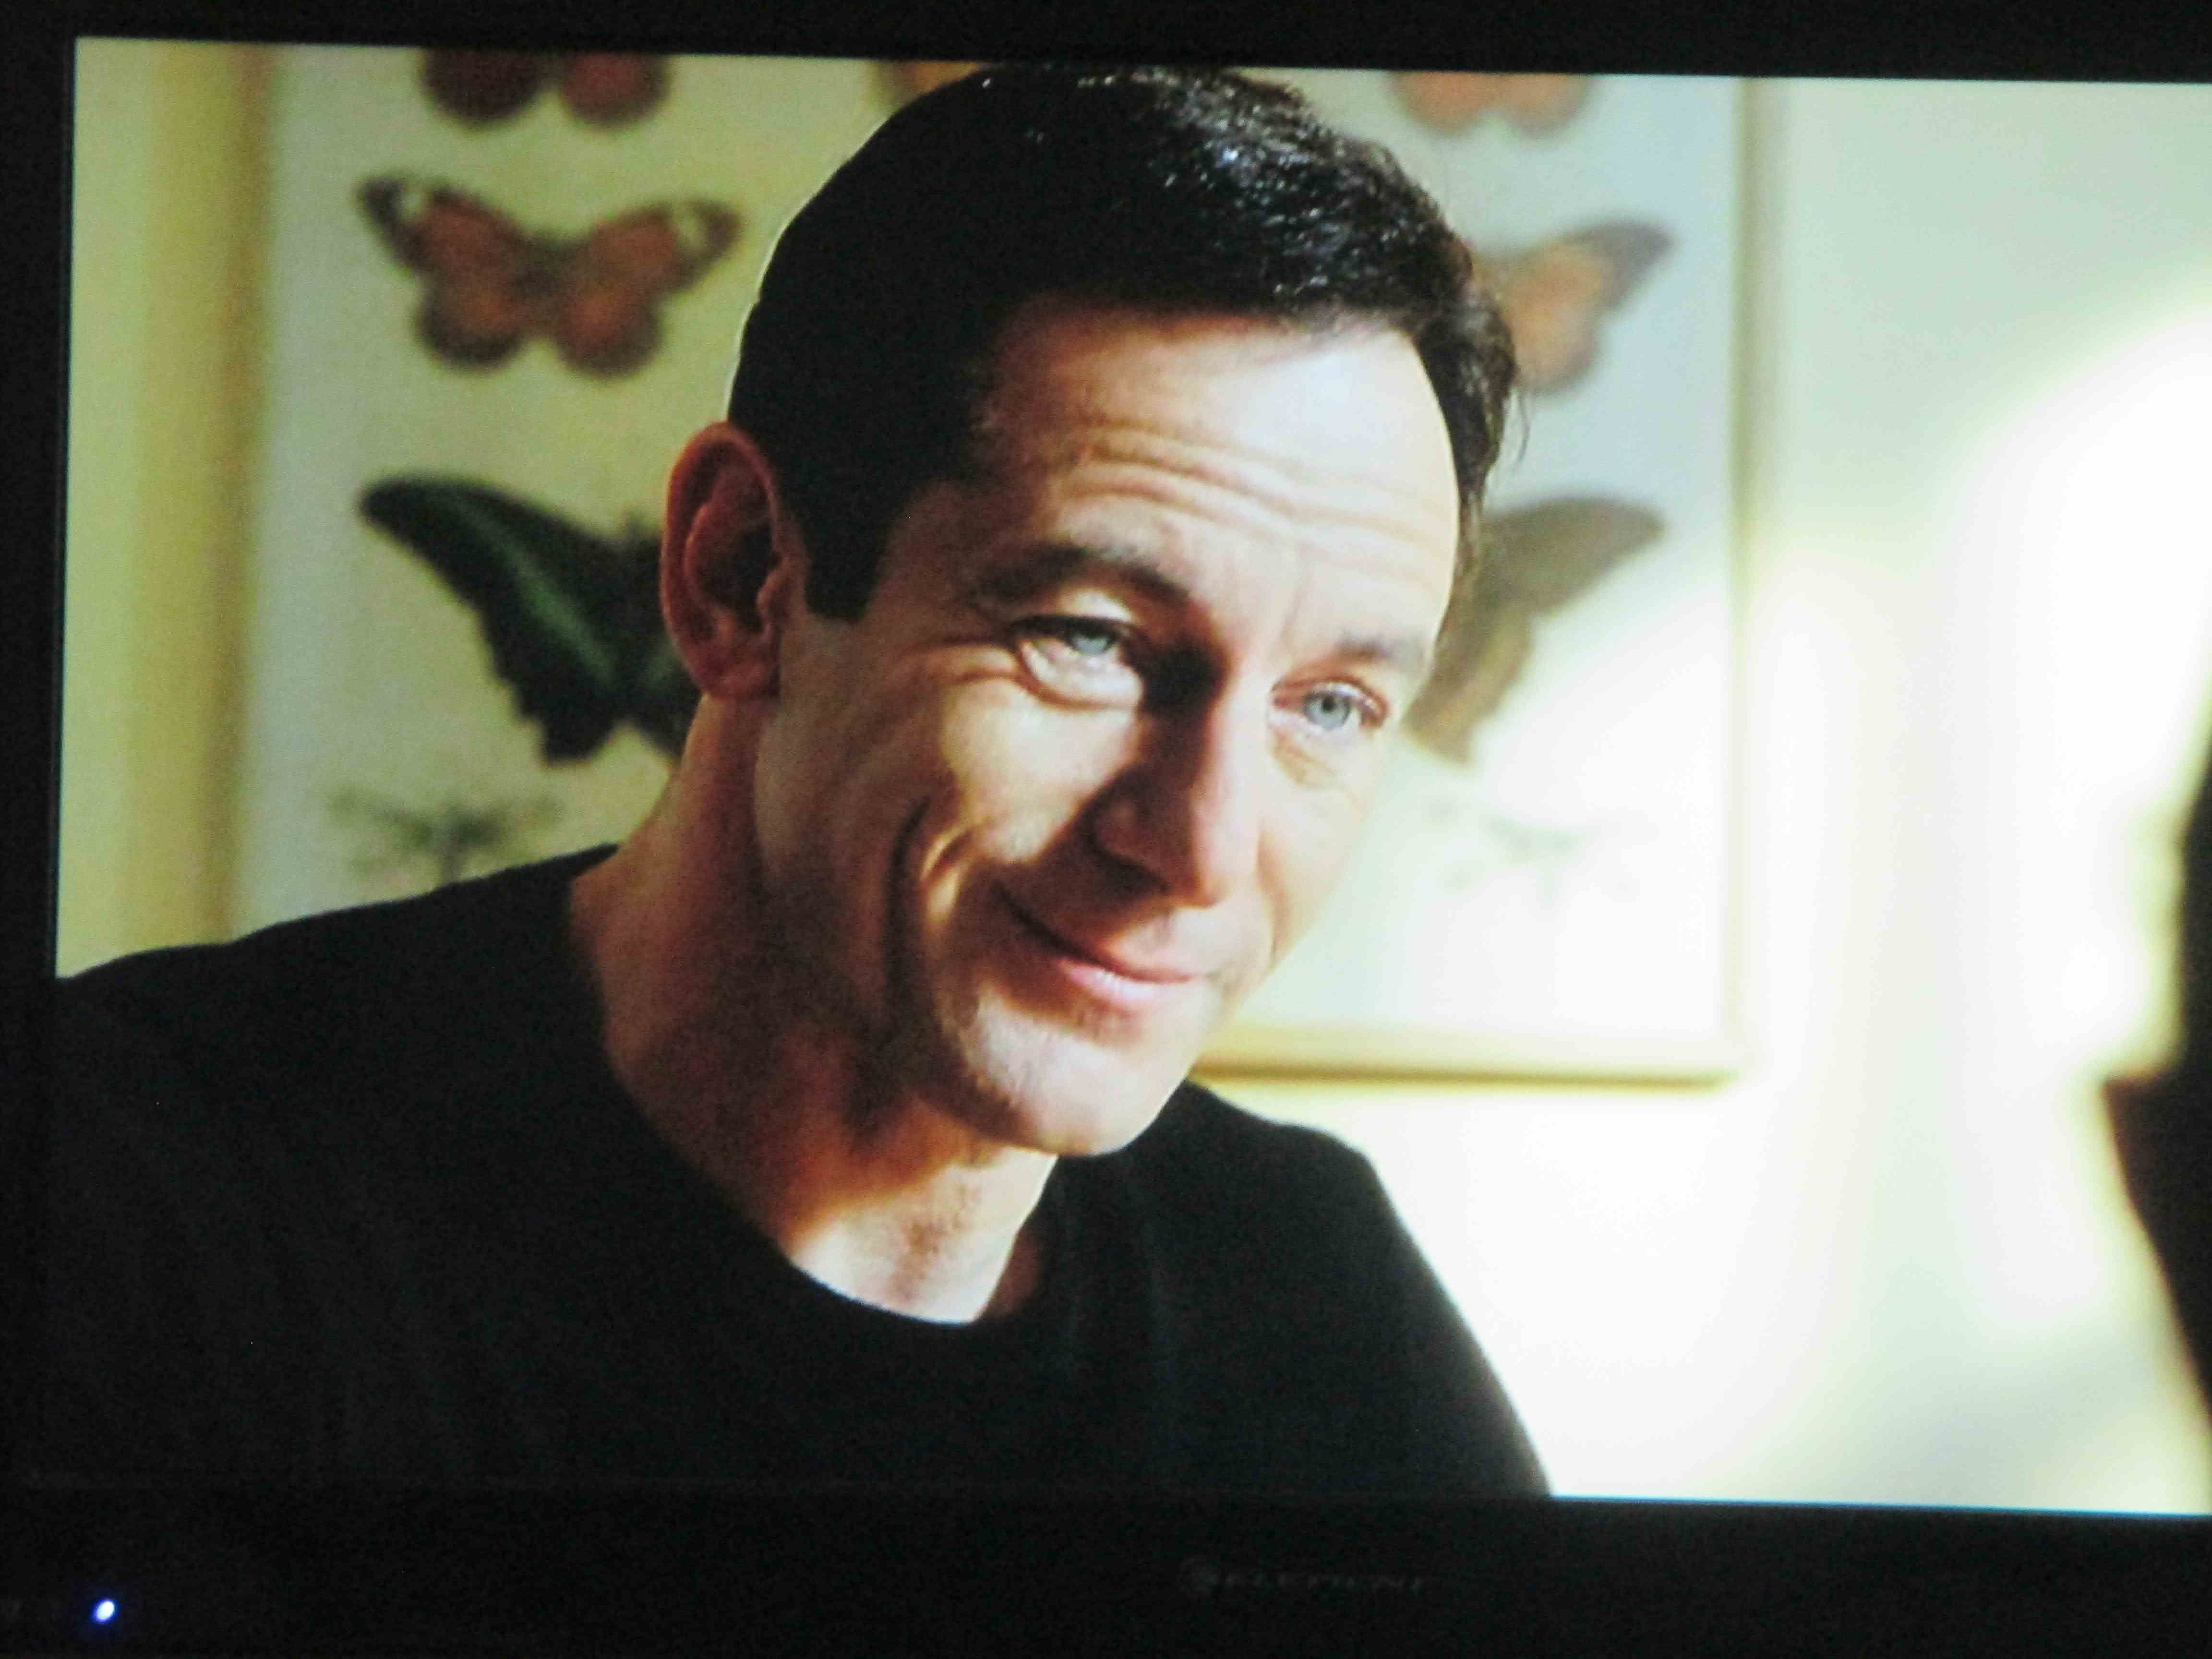 And, Jason Isaacs, not too much, not too little but just right hair.